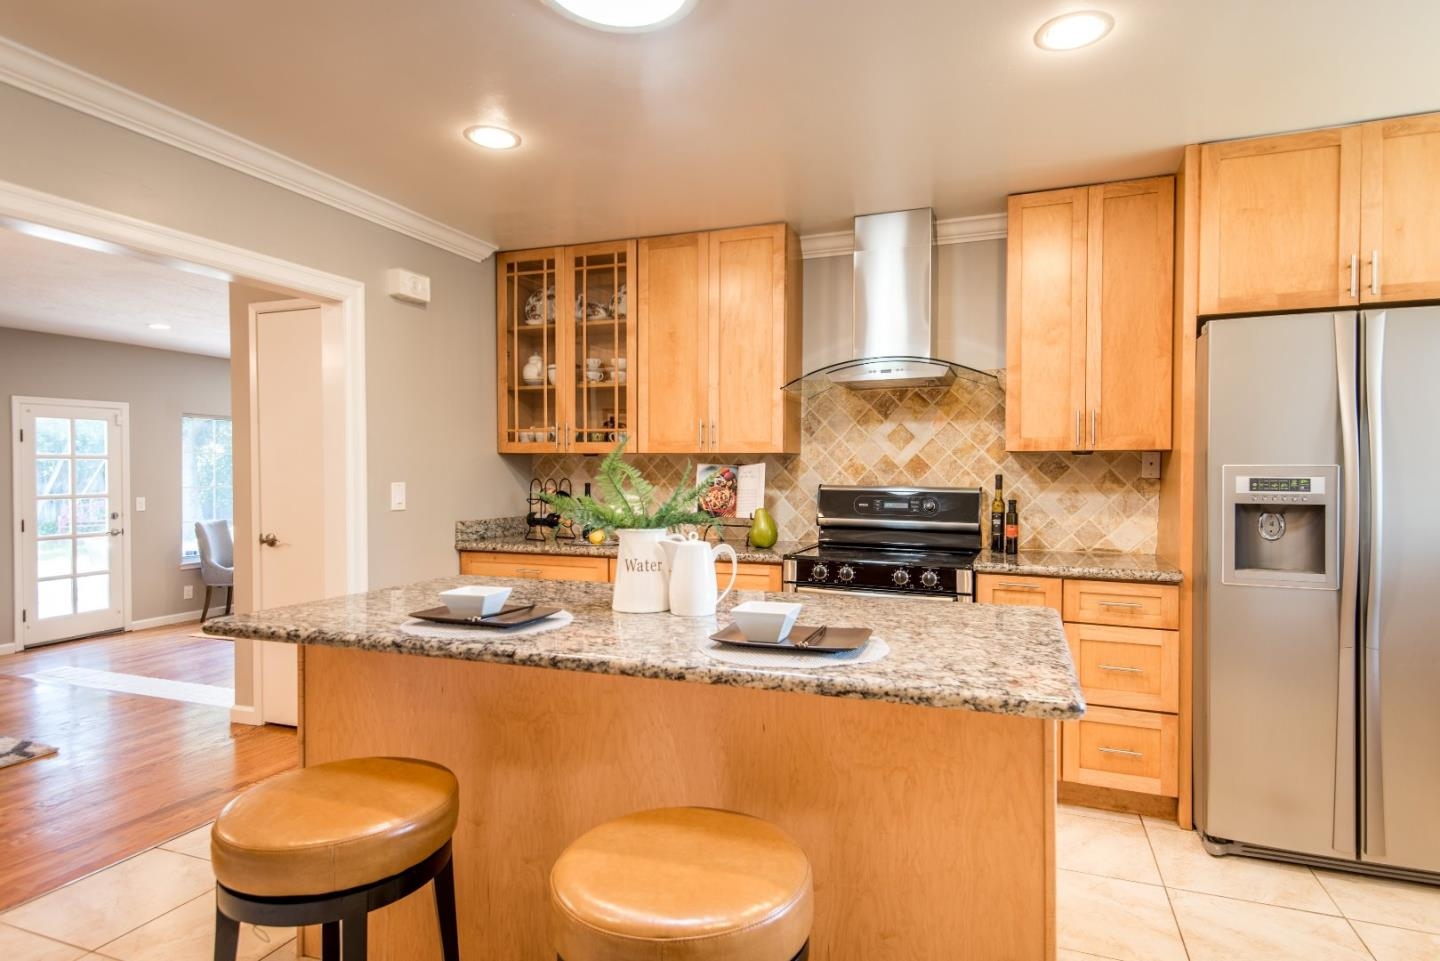 Additional photo for property listing at 955 Meadowood  SAN JOSE, CALIFORNIA 95120